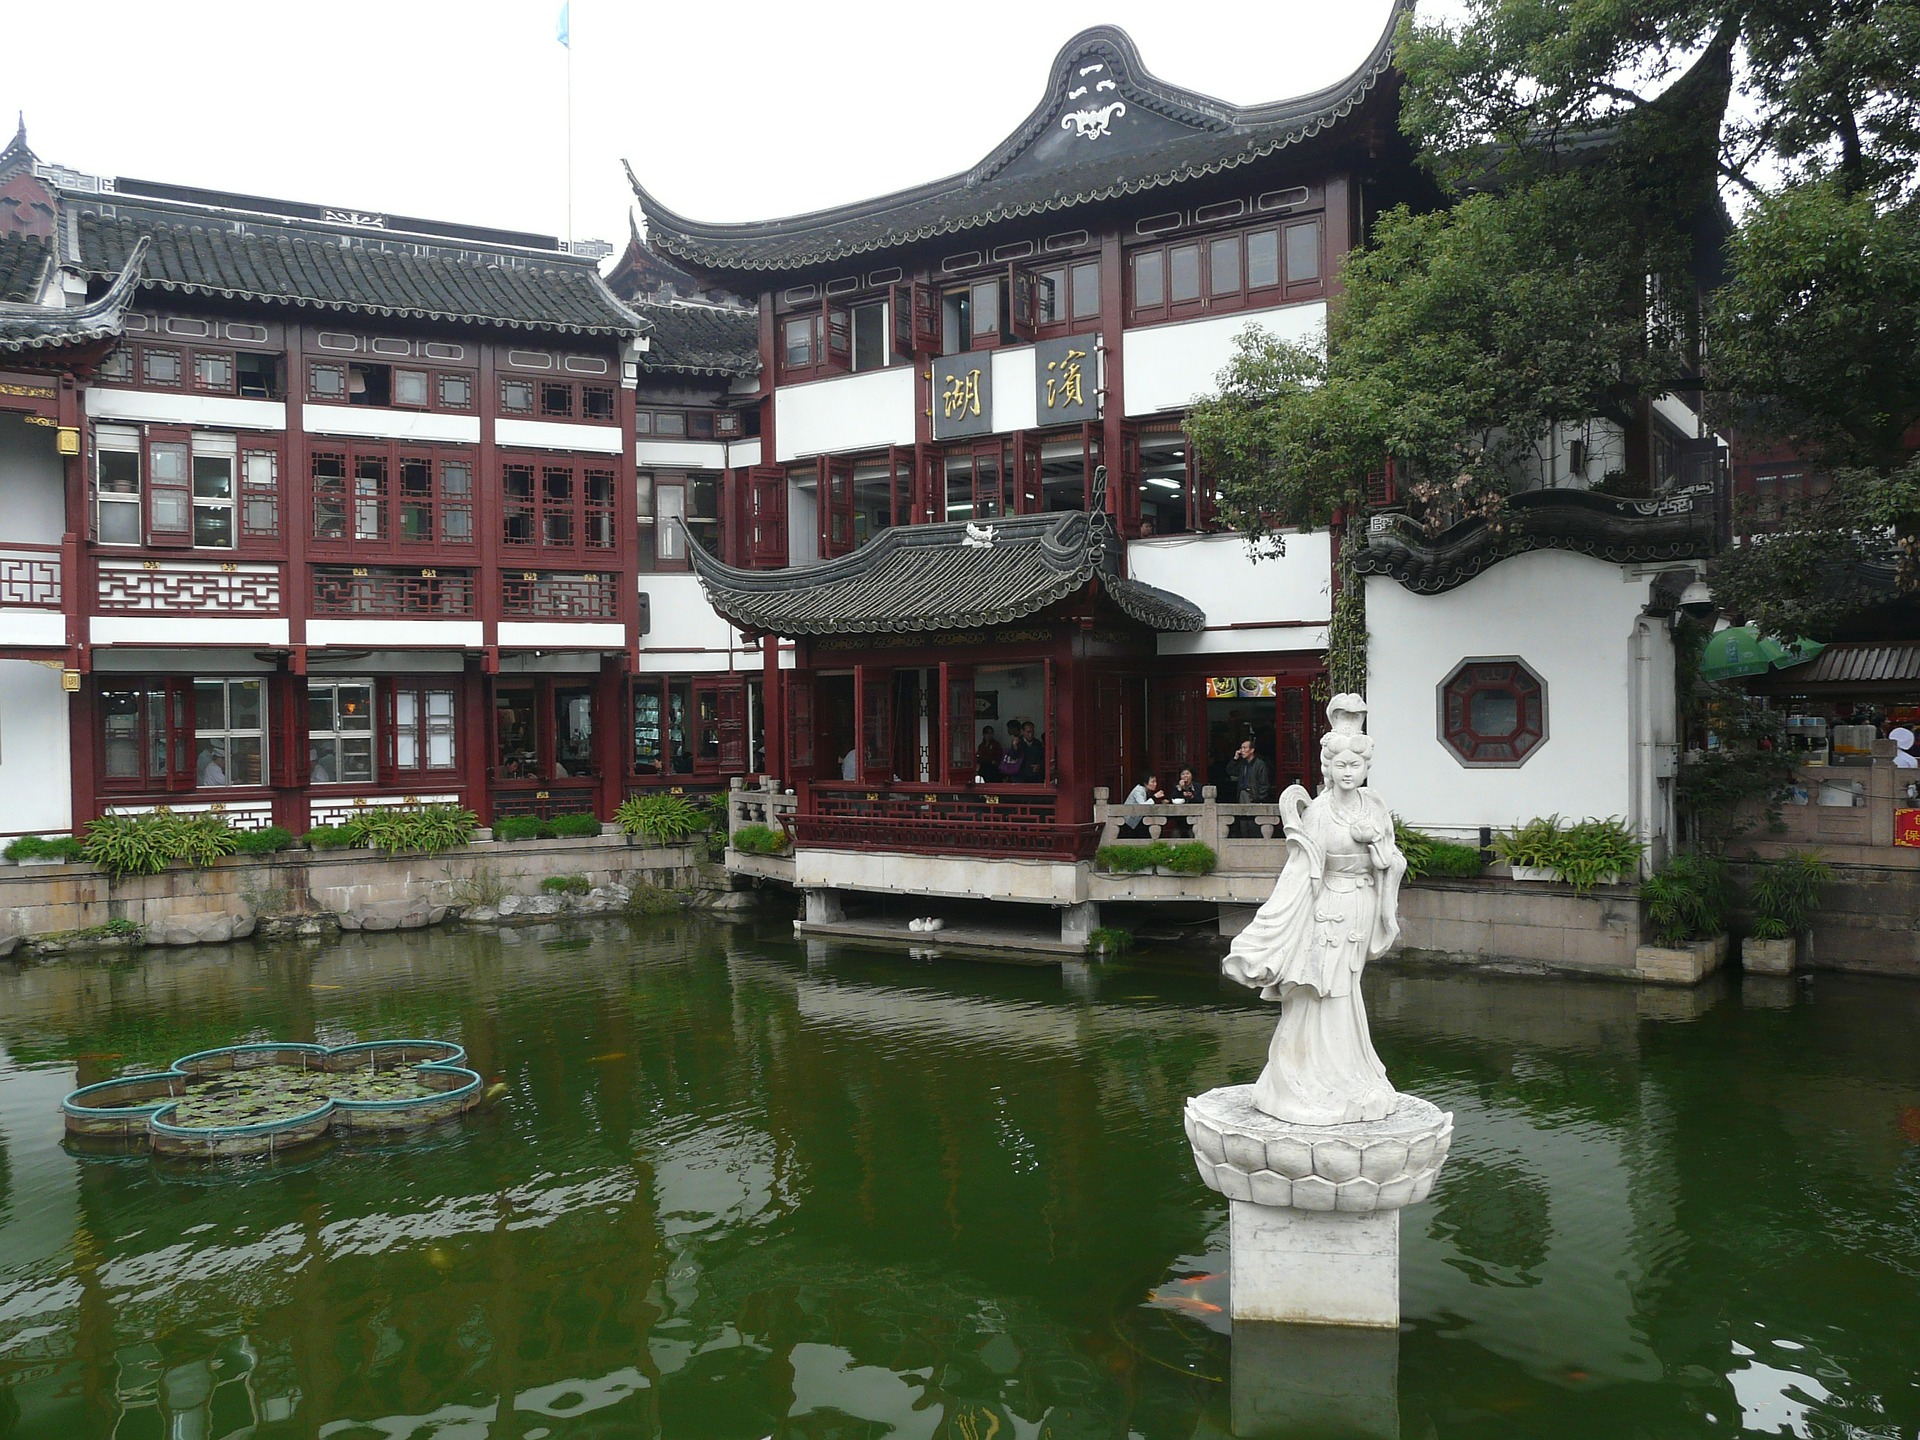 Image of a historic area in Shanghai